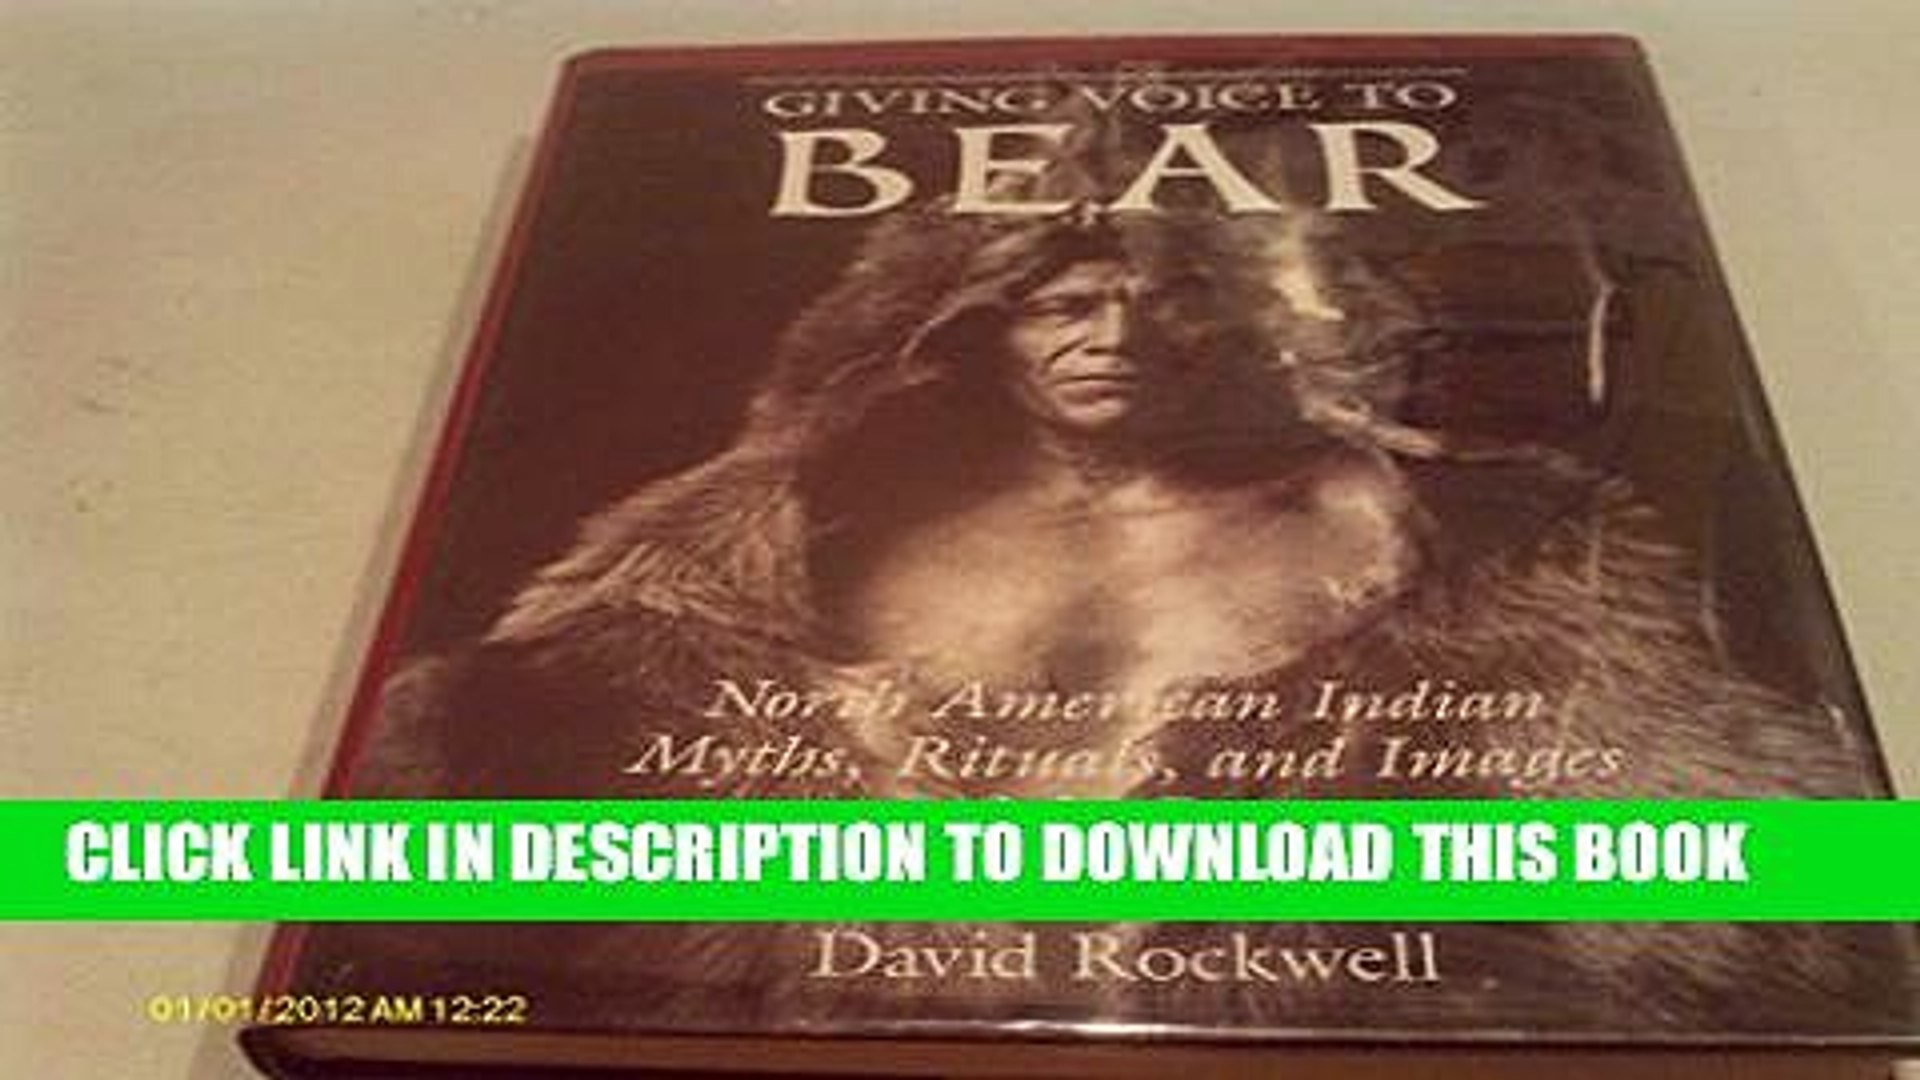 [PDF] Giving Voice to Bear: American Indian Myths, Rituals and Images of the Bear Full Collection